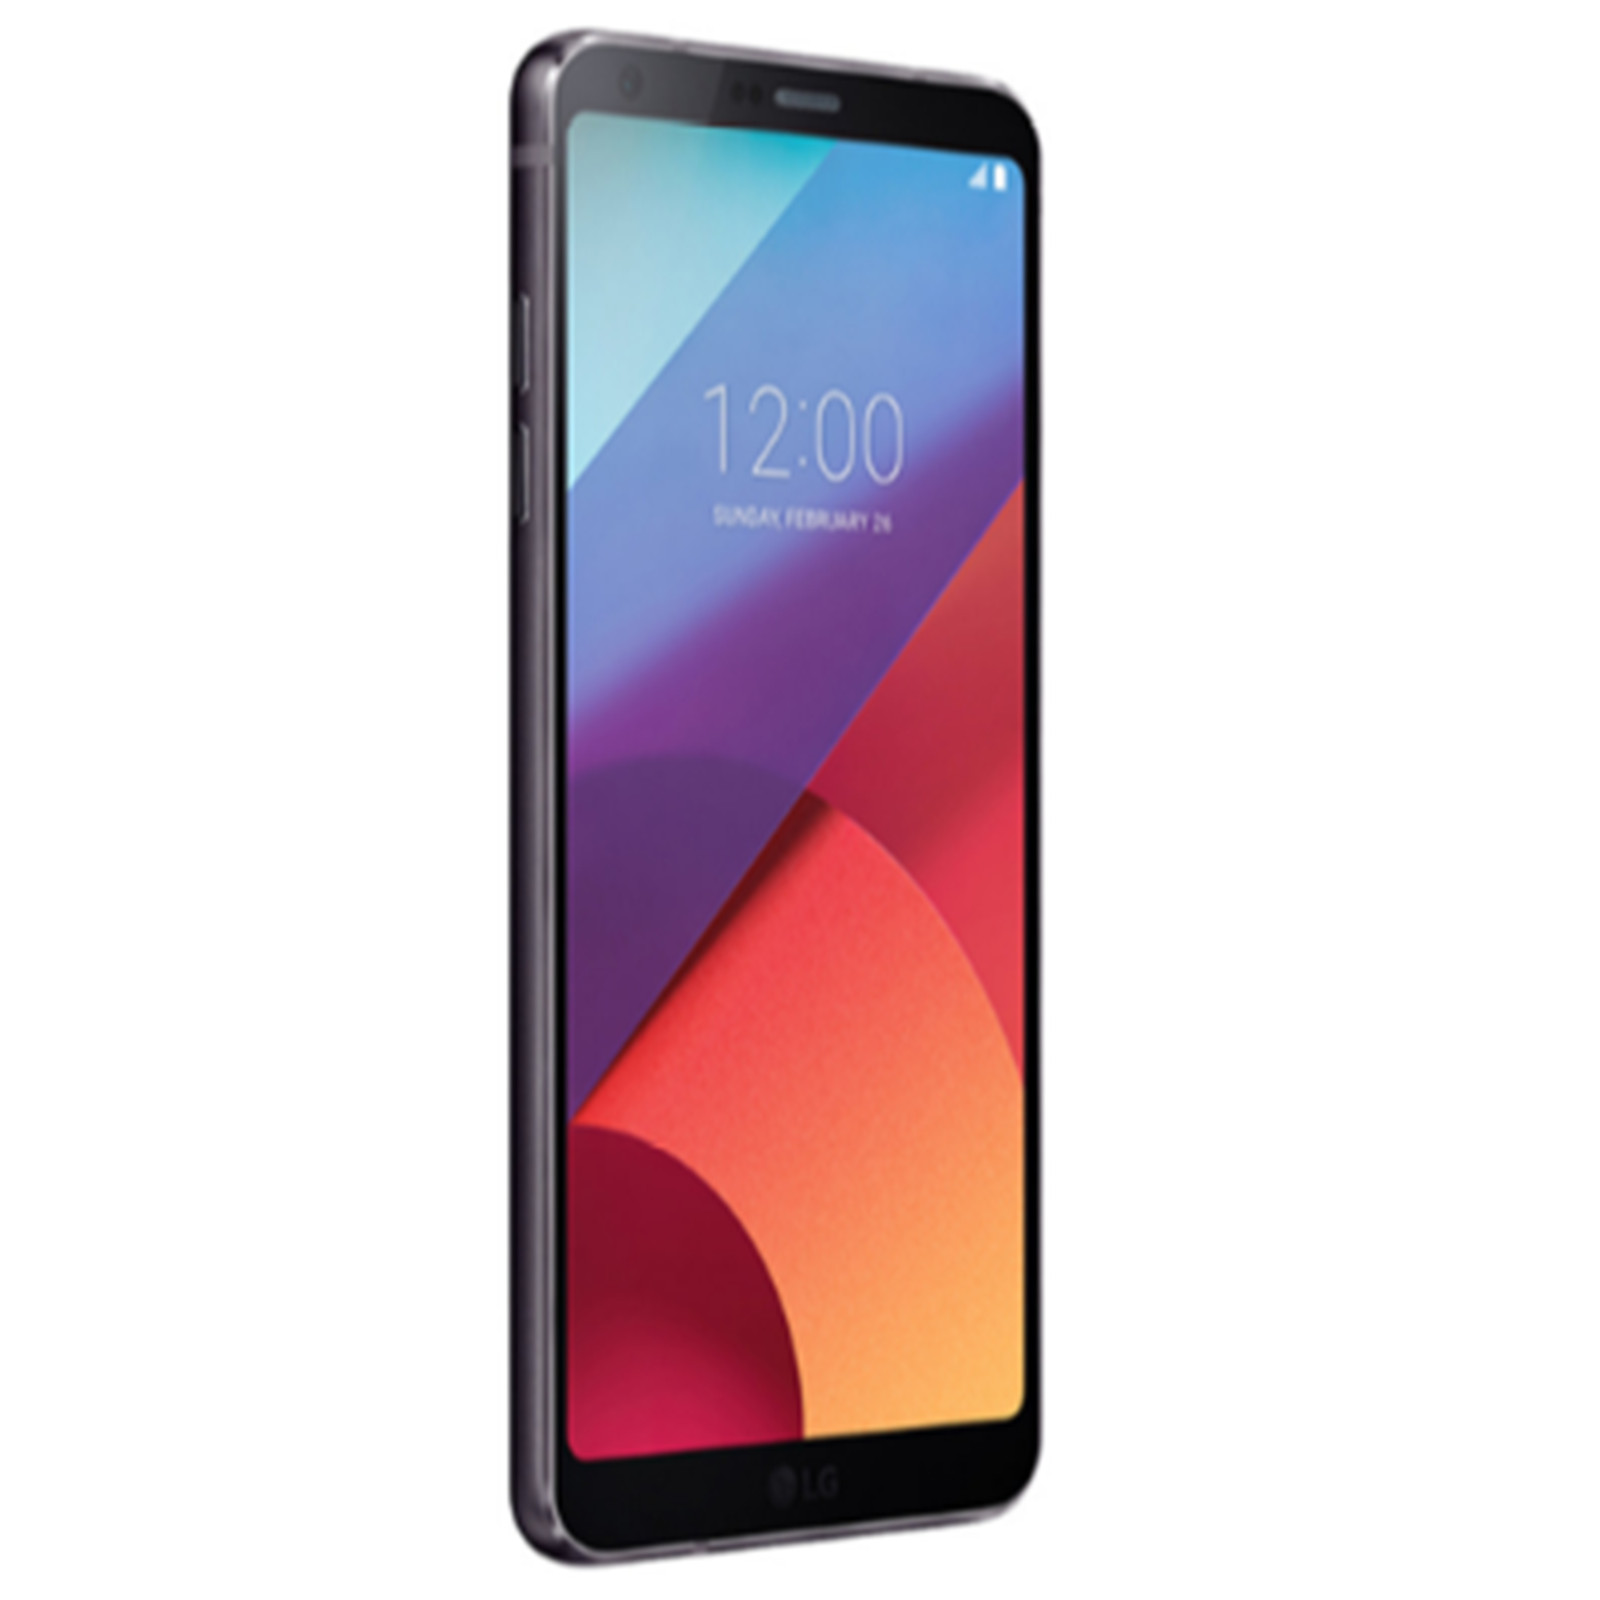 Buy the LG G6 Dual SIM Smartphone 64GB - Astro Black - with